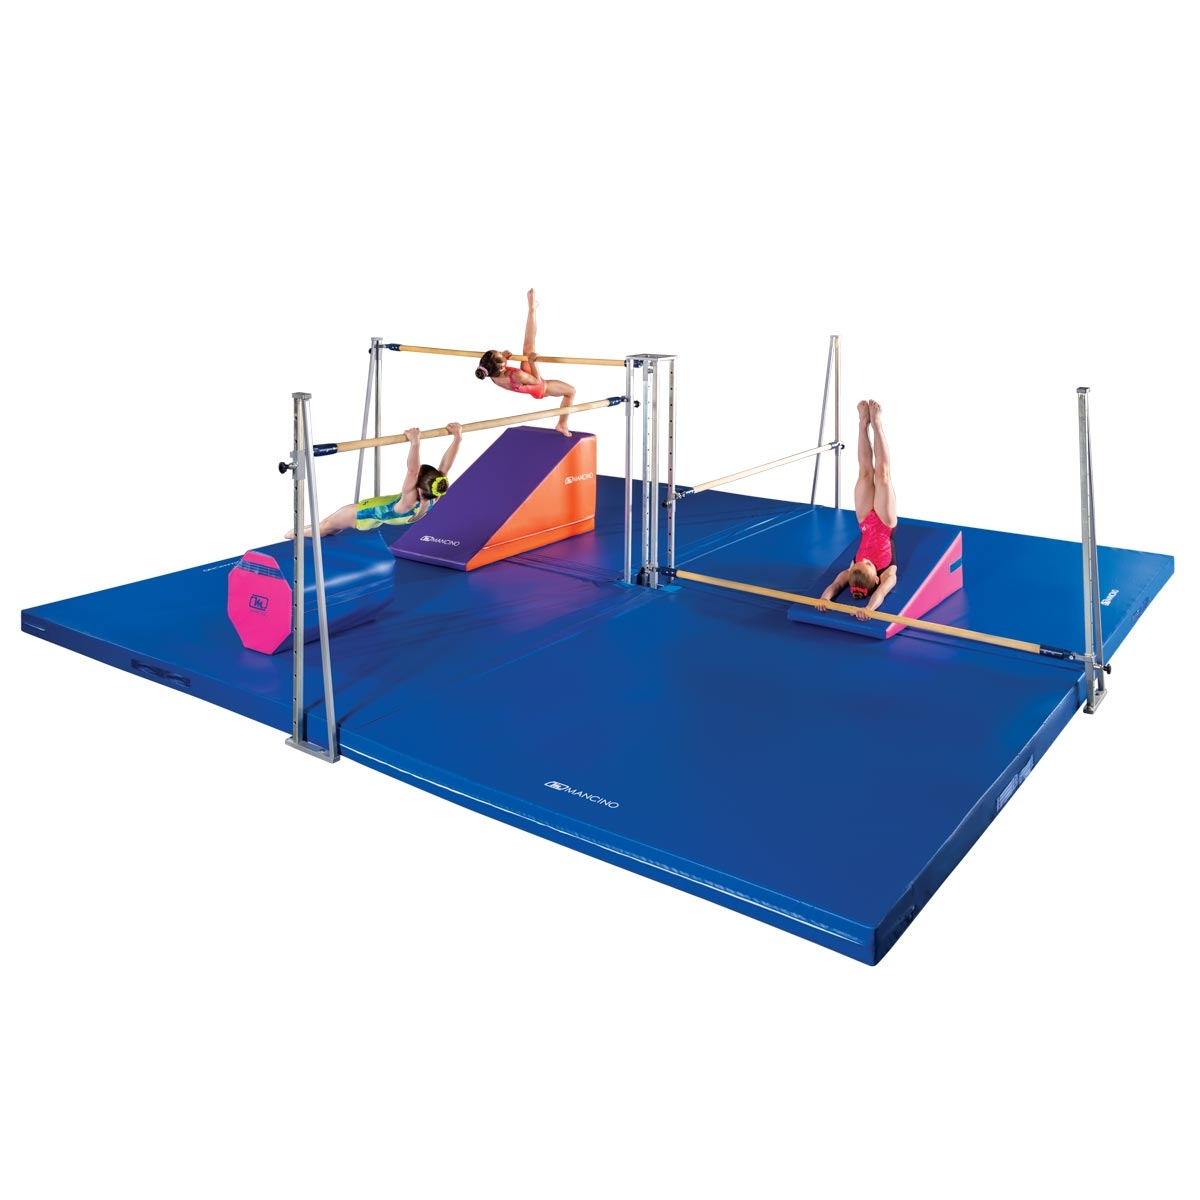 mancino quad bars set with 6' rails and 12cm mats